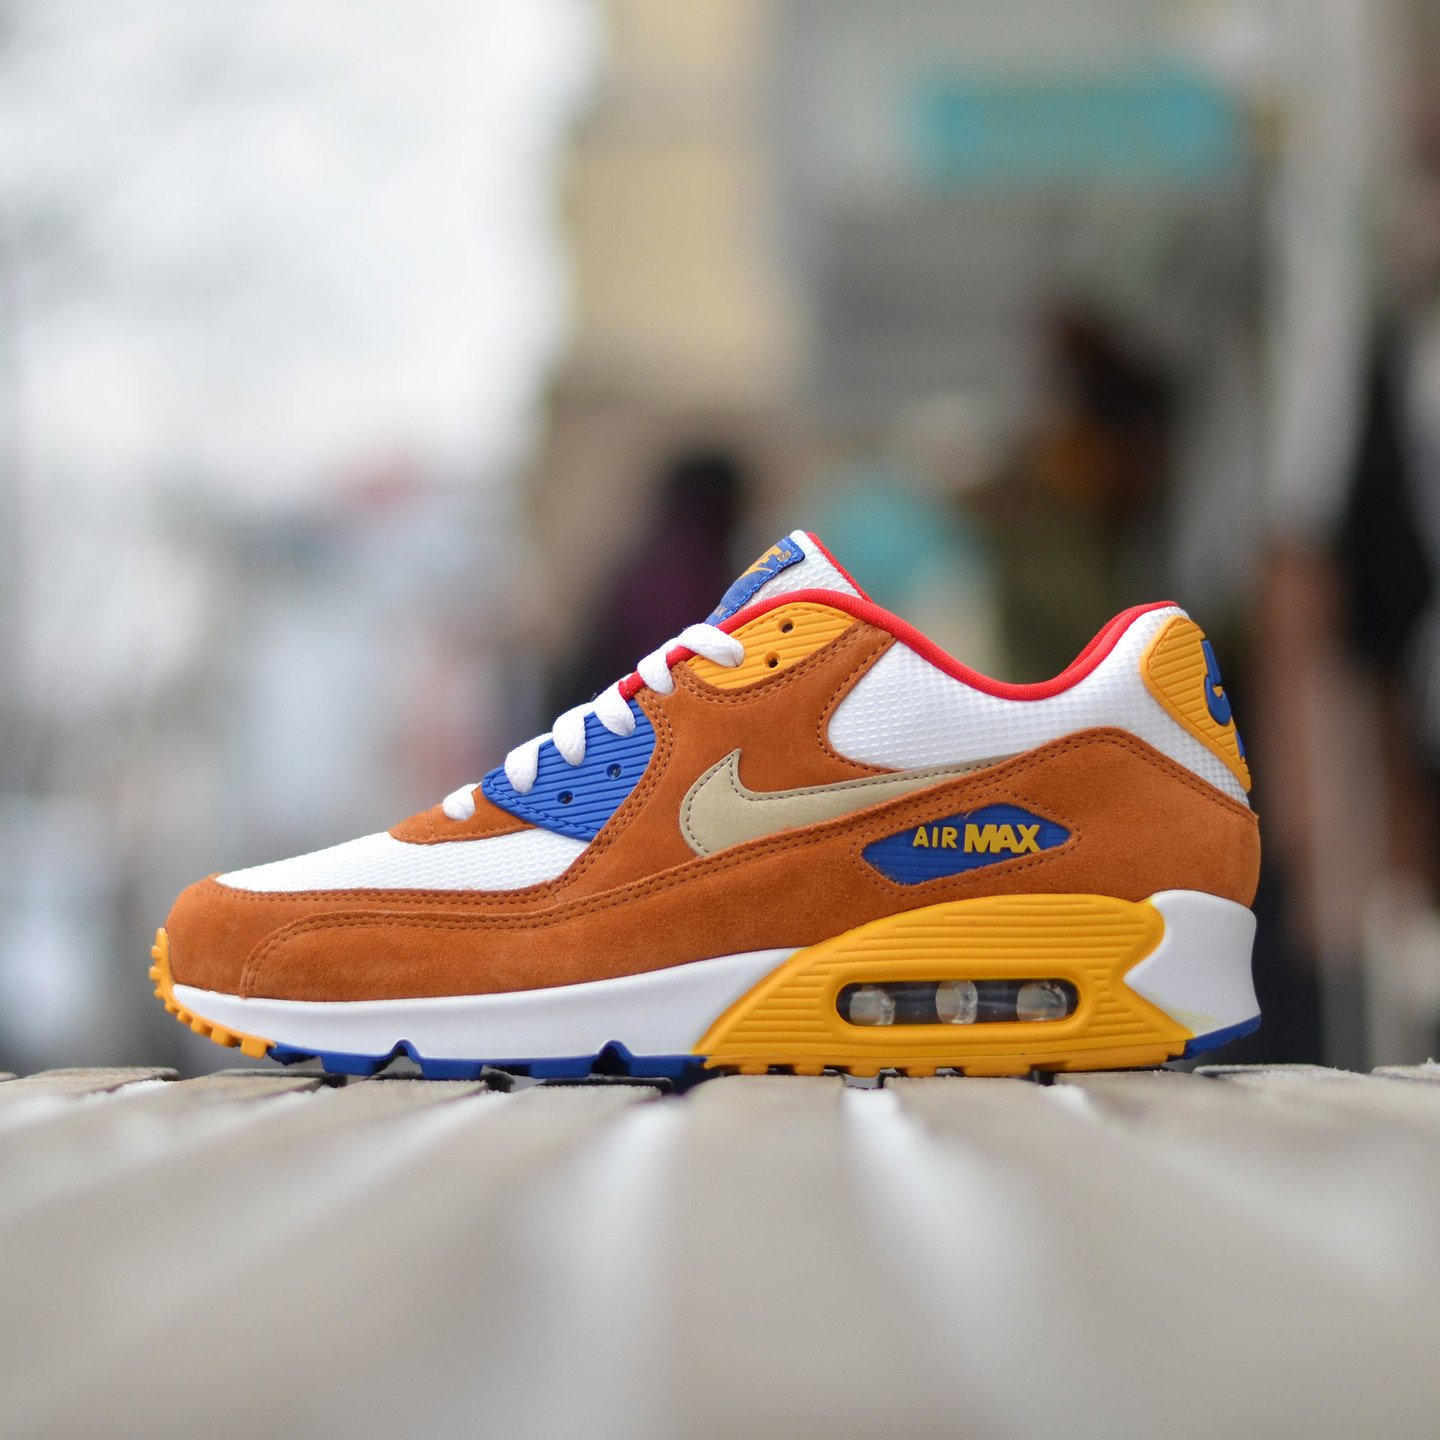 Nike Air Max 90 Premium White / Brown / Yellow / Gold 700155-107-46